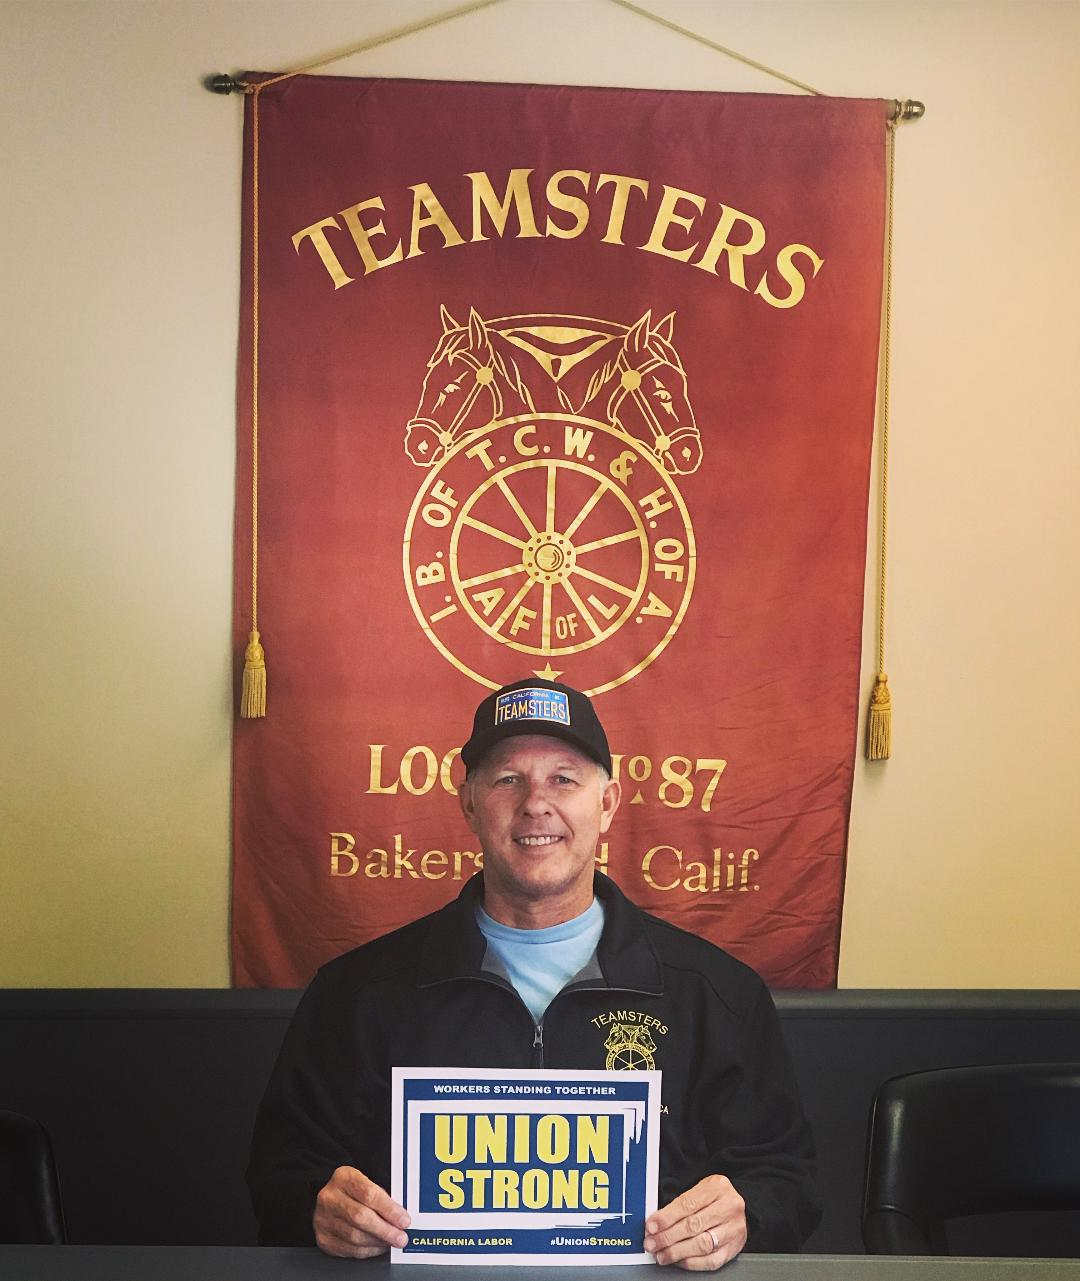 Teamsters Local 87